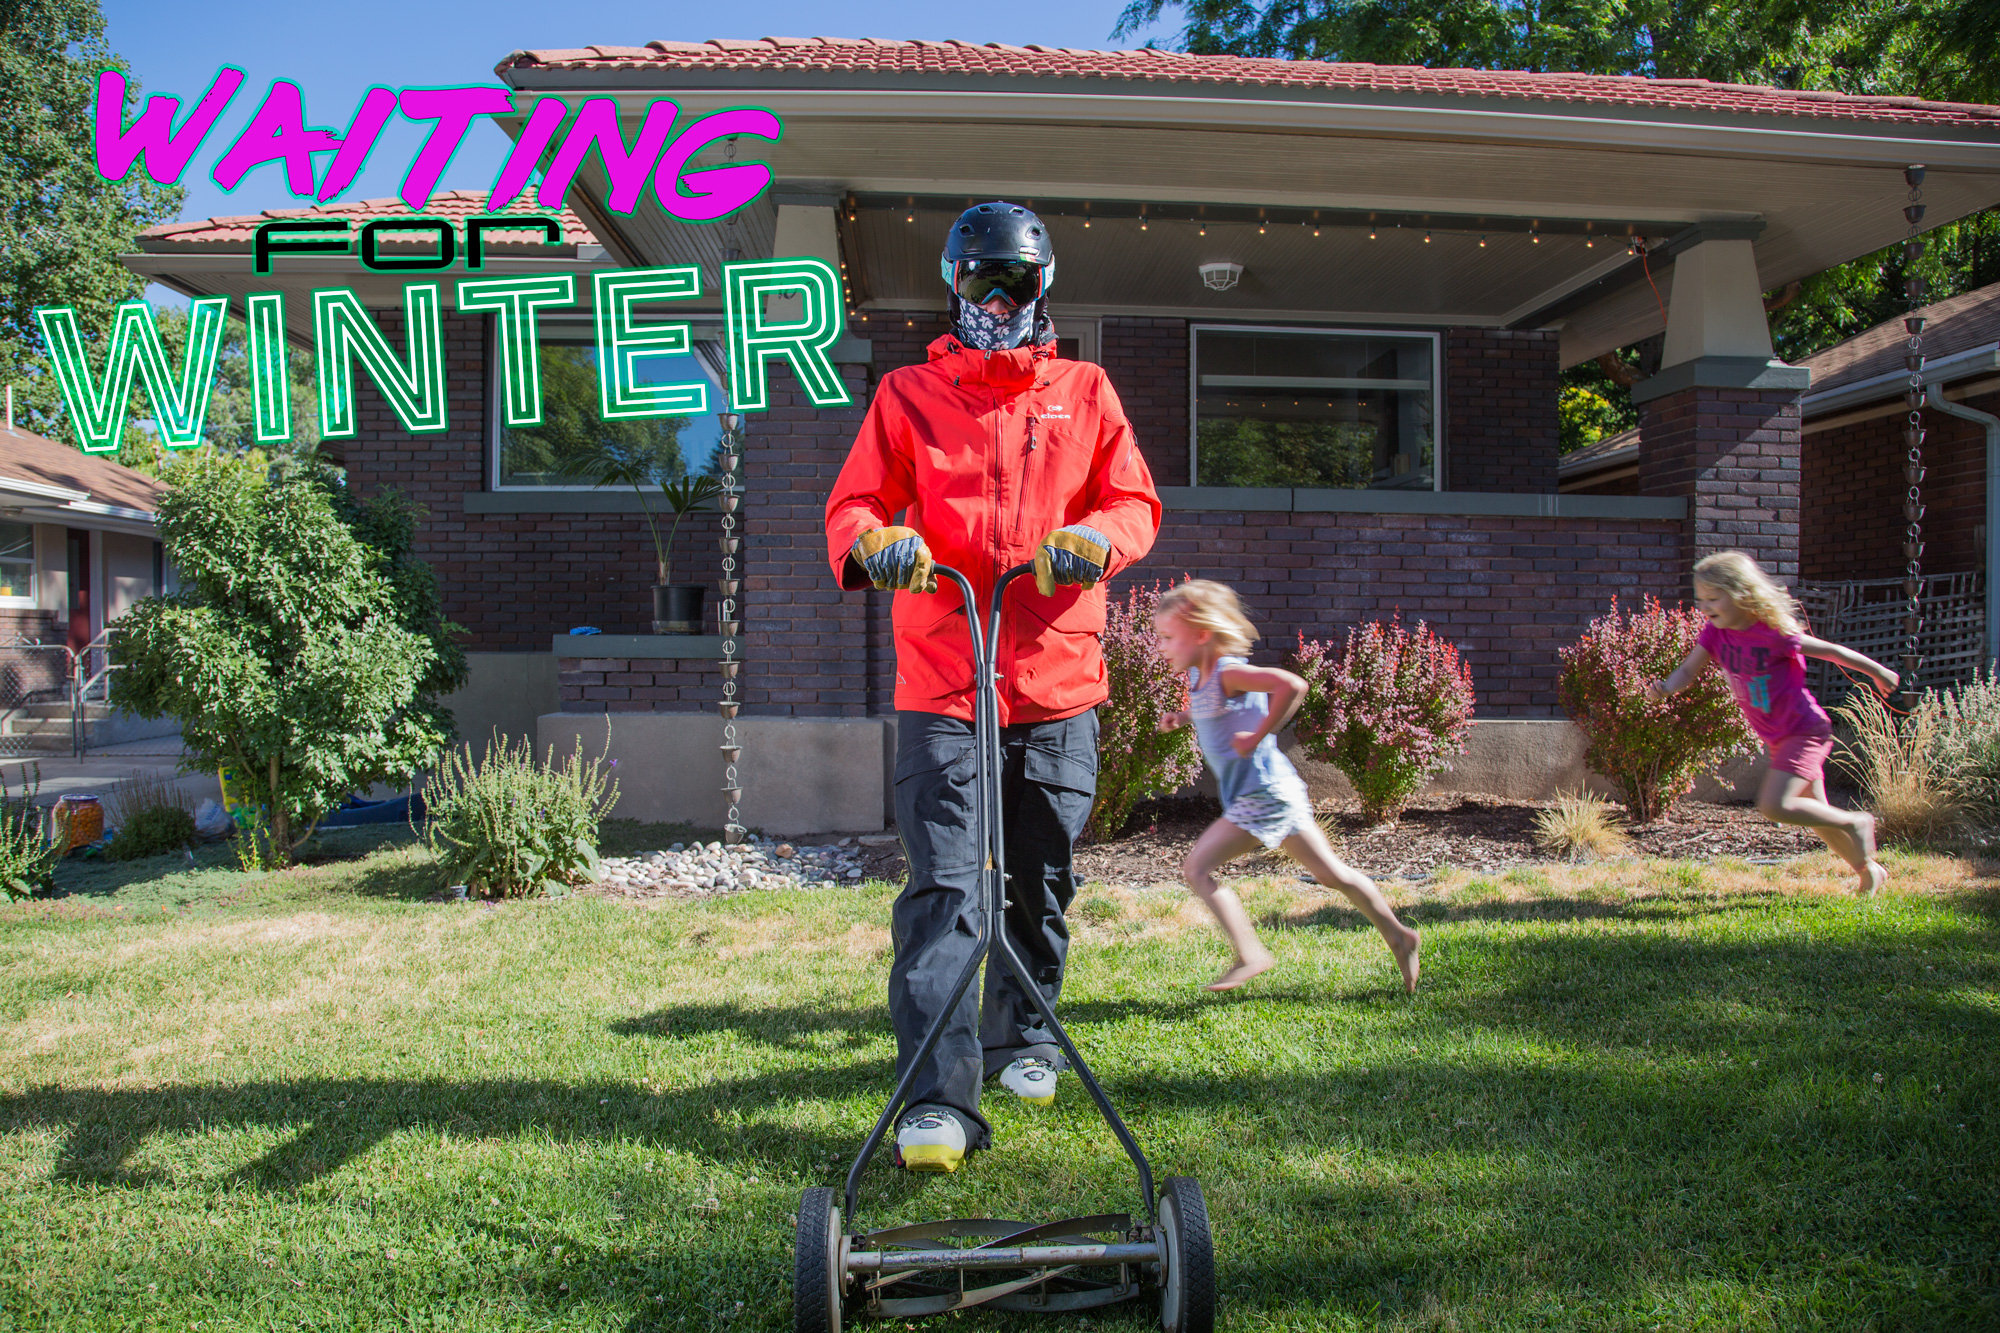 Waiting For Winter - Lawn